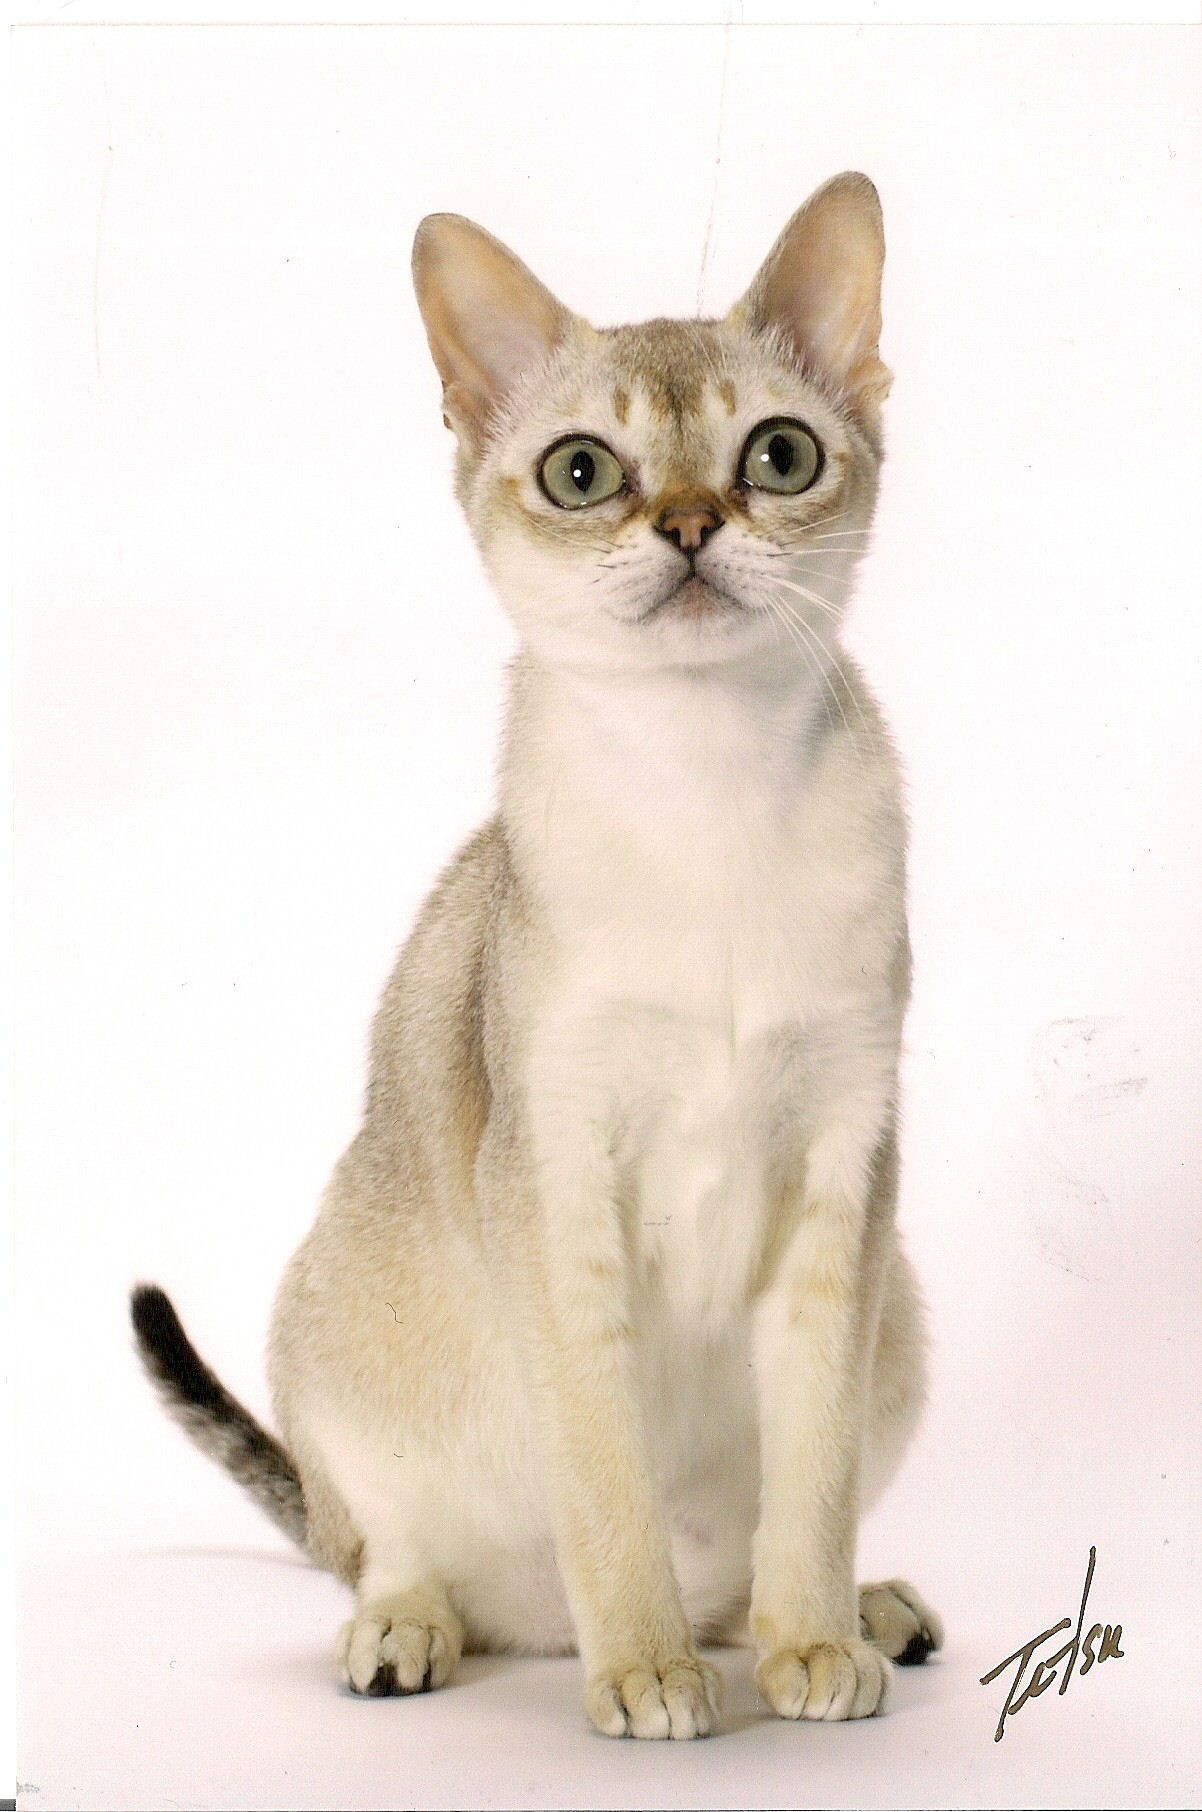 Singapuras Are Gorgeous Like The Burmese And Abyssinian I Like The Coat And This Beautiful Breed Has Captivating Eye Best Cat Breeds Singapura Cat Cat Breeds